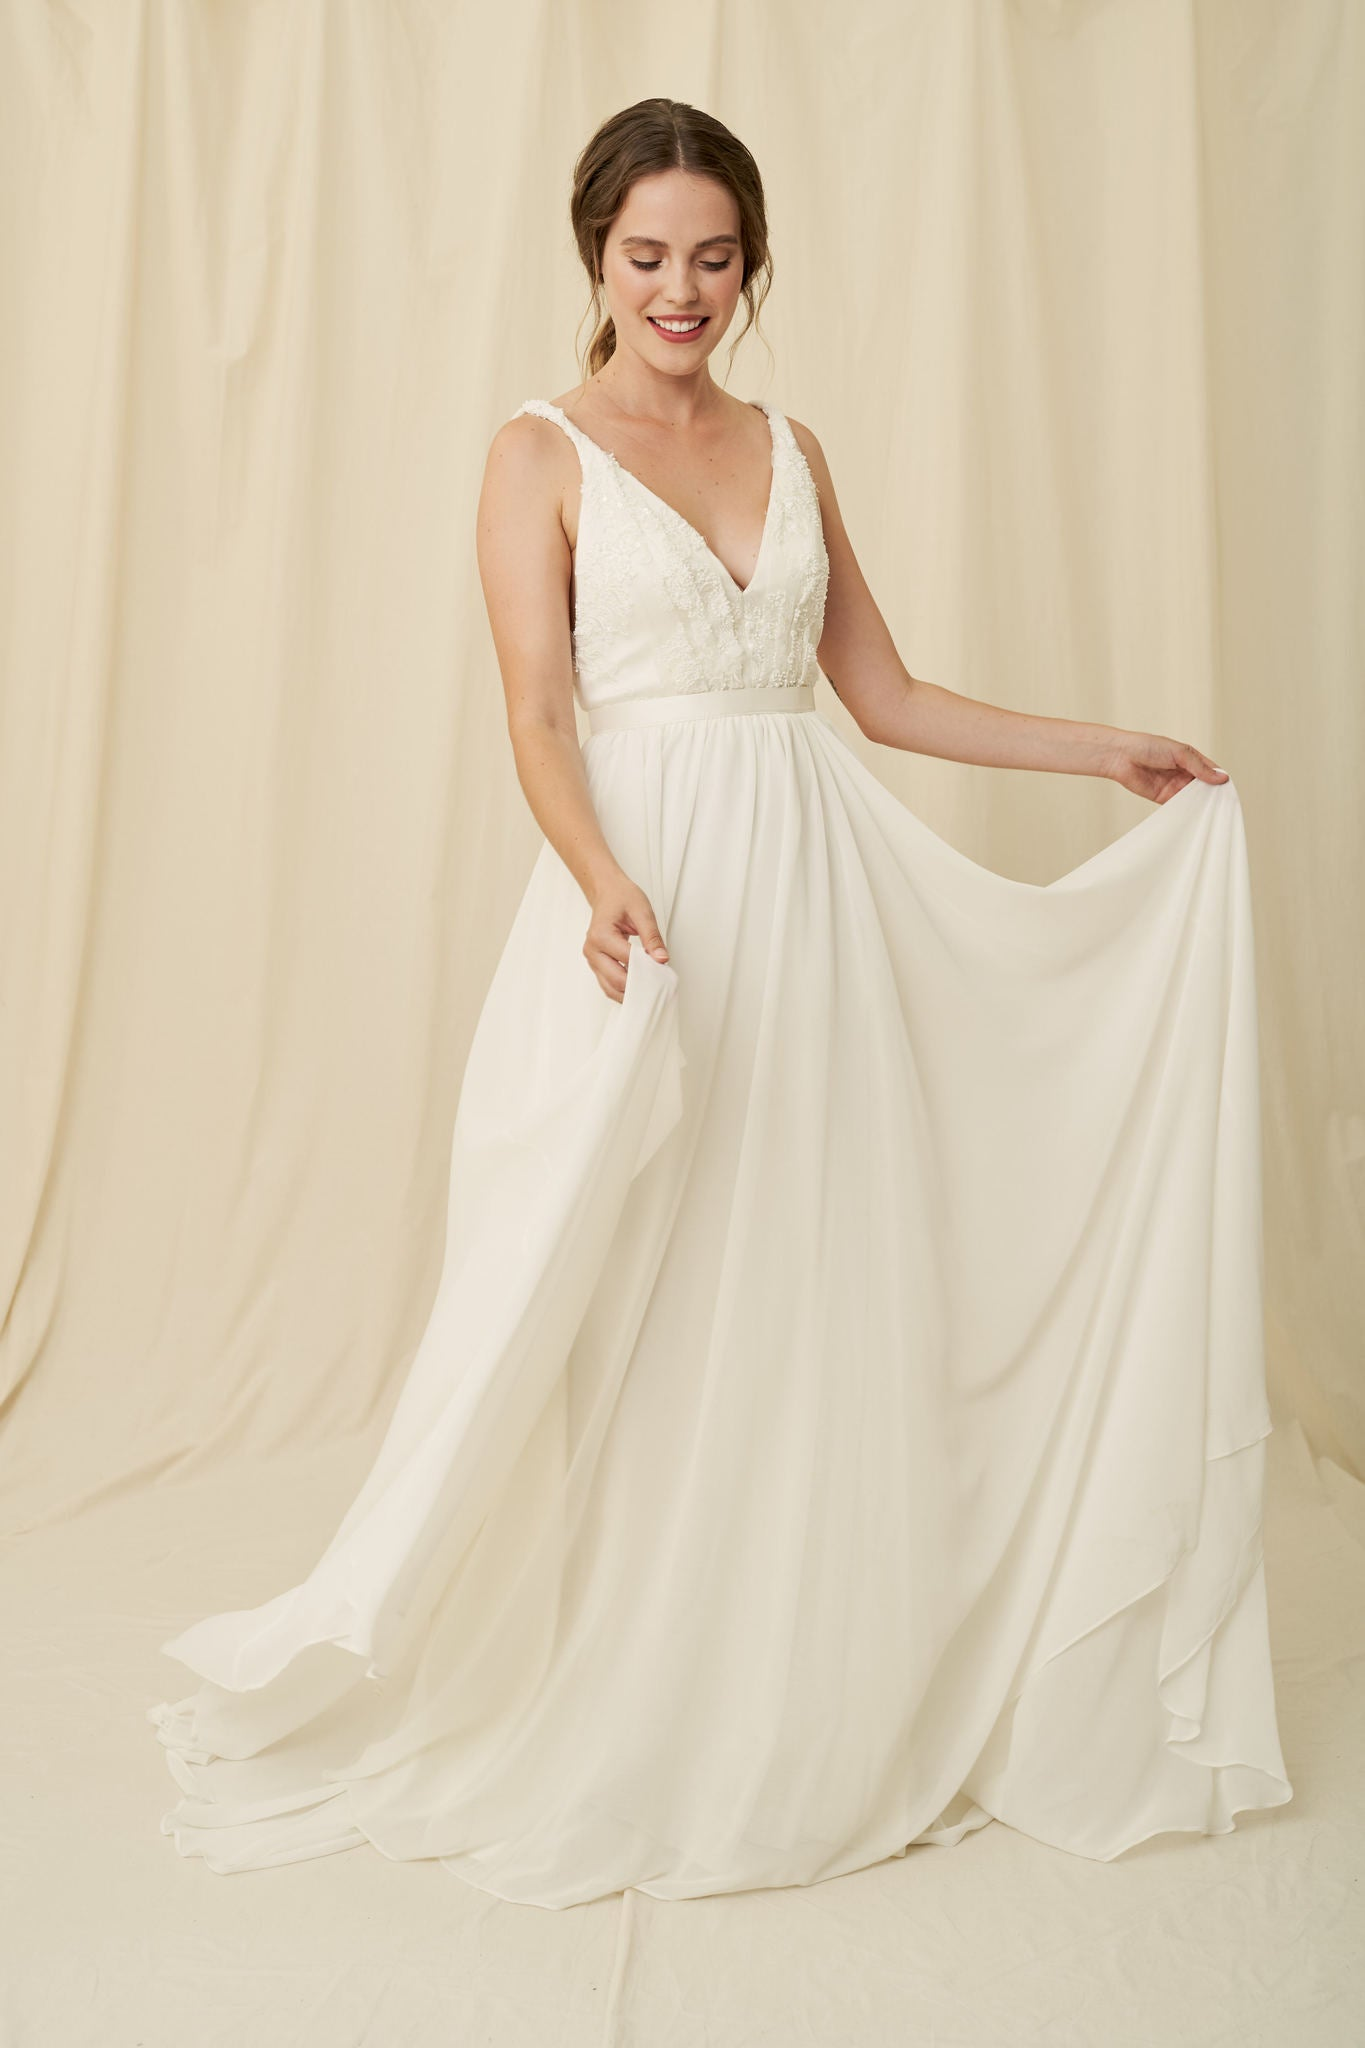 A lightweight wedding gown with a chiffon skirt and beaded lace lace on a plunging bodice with twisted straps.